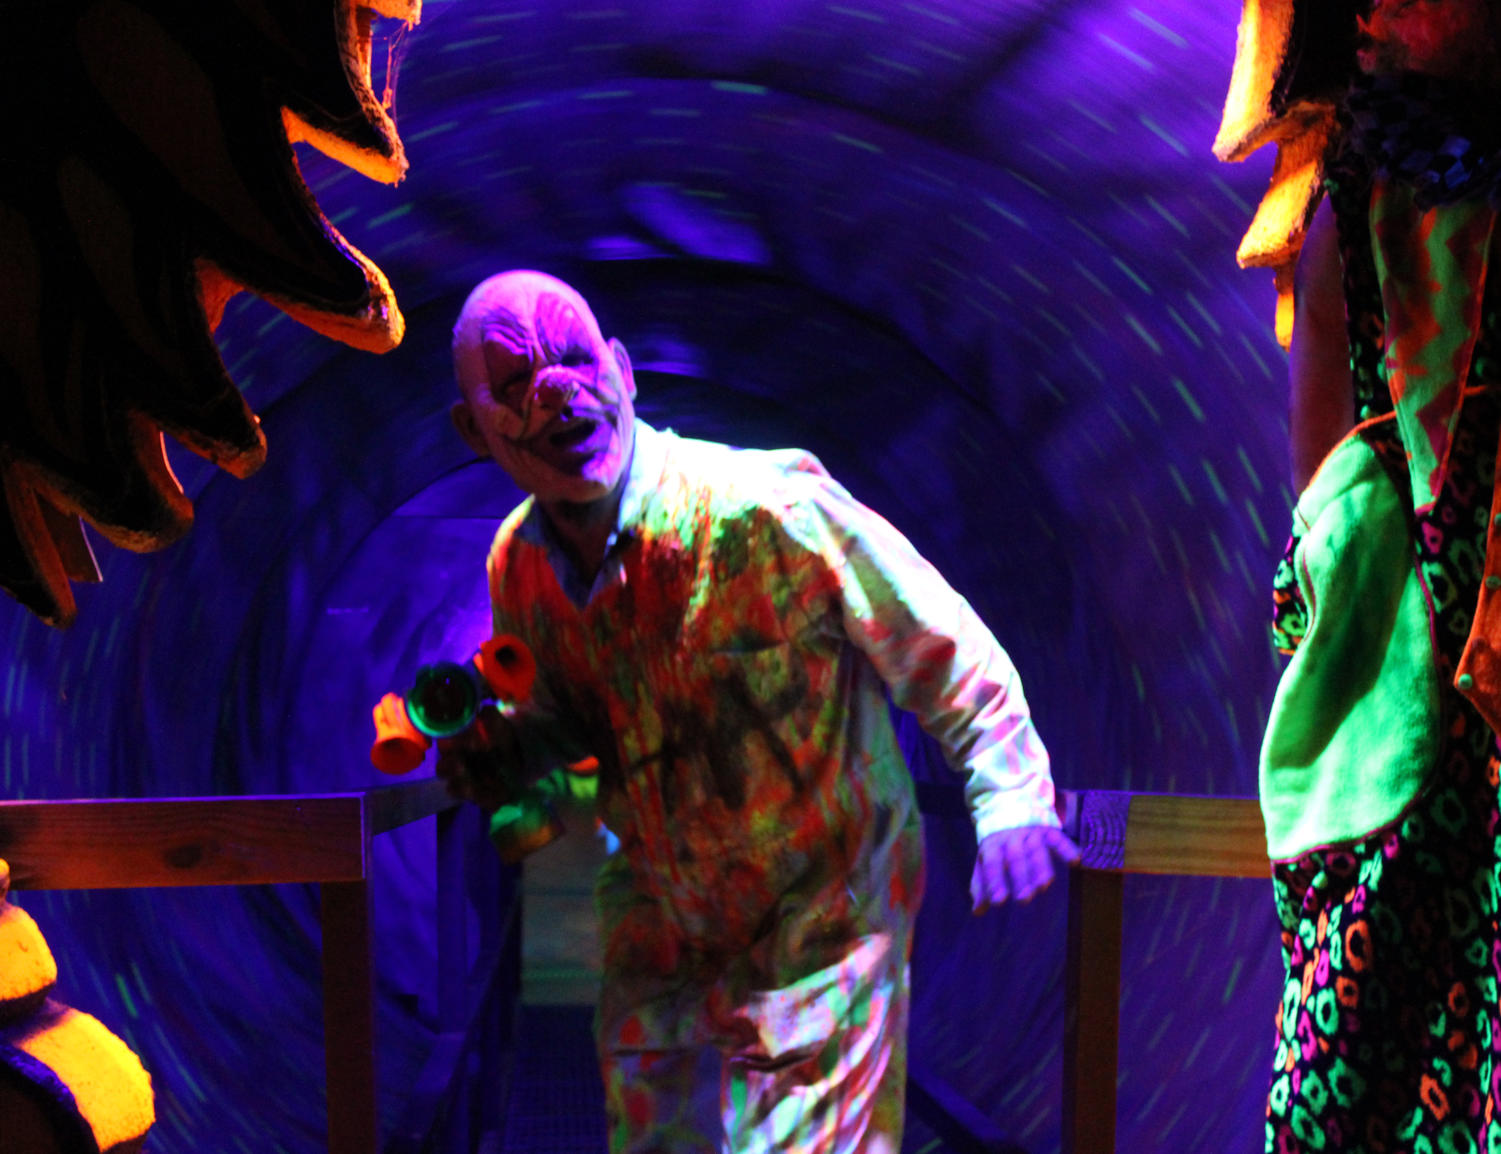 The spinning 3D tunnel serves as the clown room at NOLA Nightmare. Guests were frightened by live-actors and special effects throughout the haunted house. Photo credit: Caitlyn Reisgen